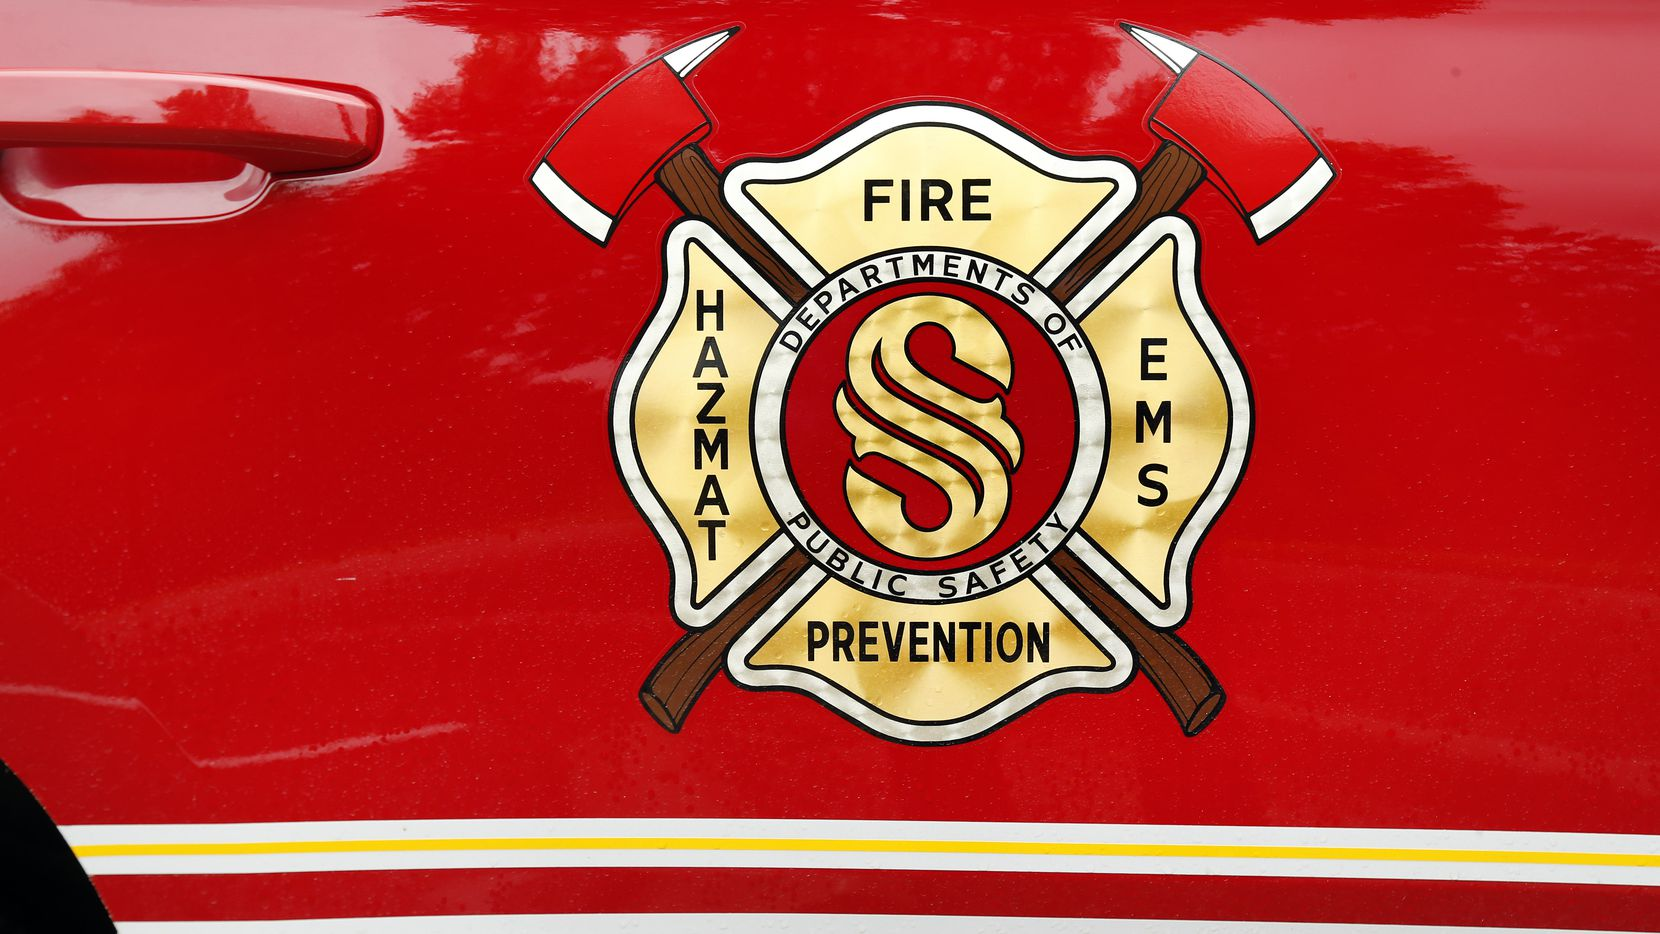 A Southlake Fire Department logo is pictured on a department vehicle in Southlake, Texas, Tuesday, June 23, 2020.